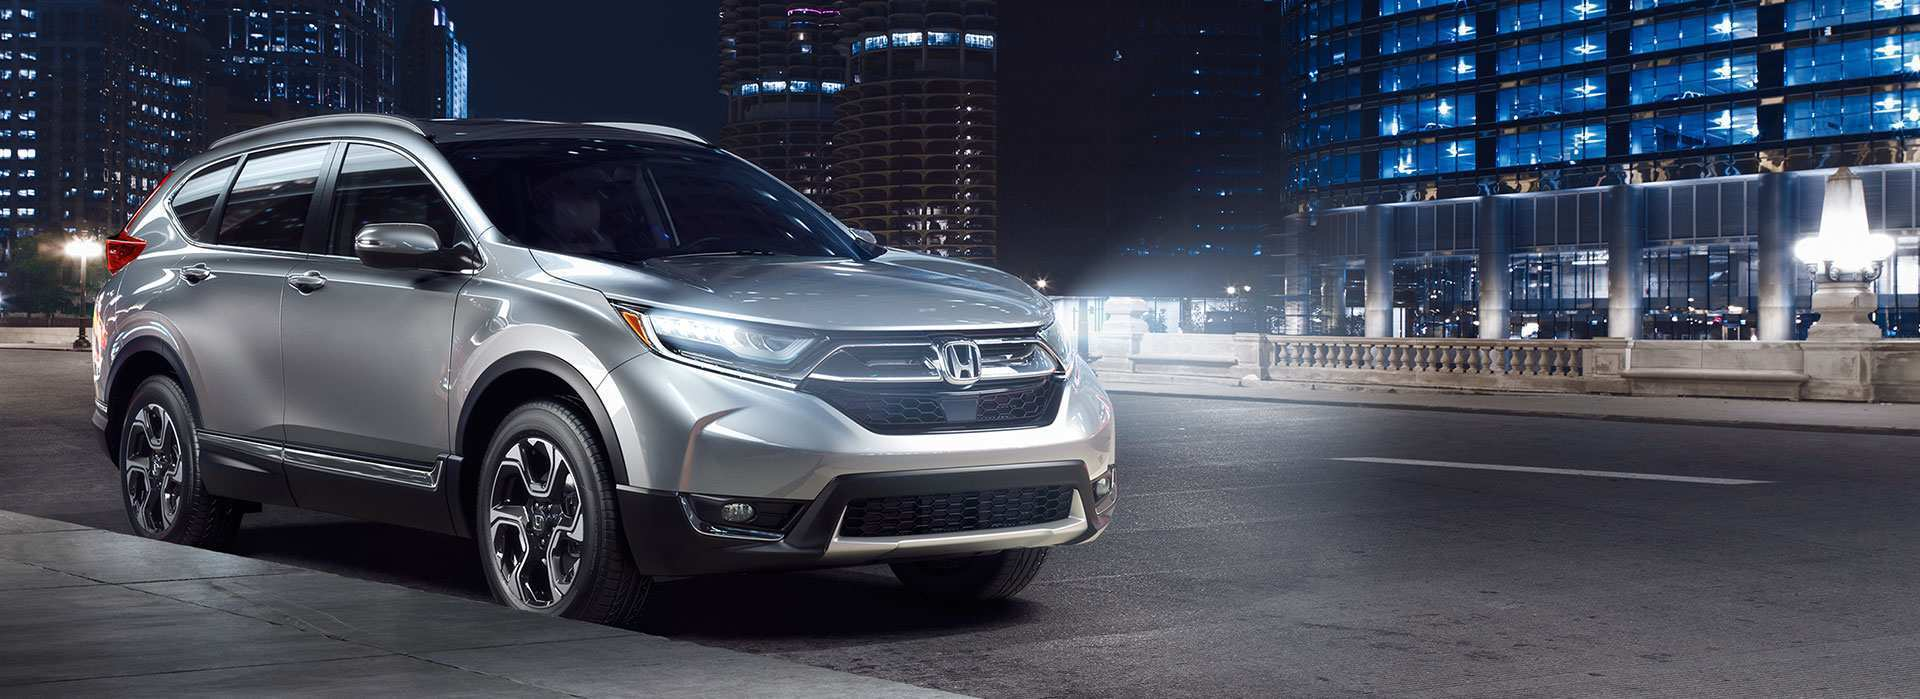 85 Concept of 2019 Honda Suv Exterior for 2019 Honda Suv